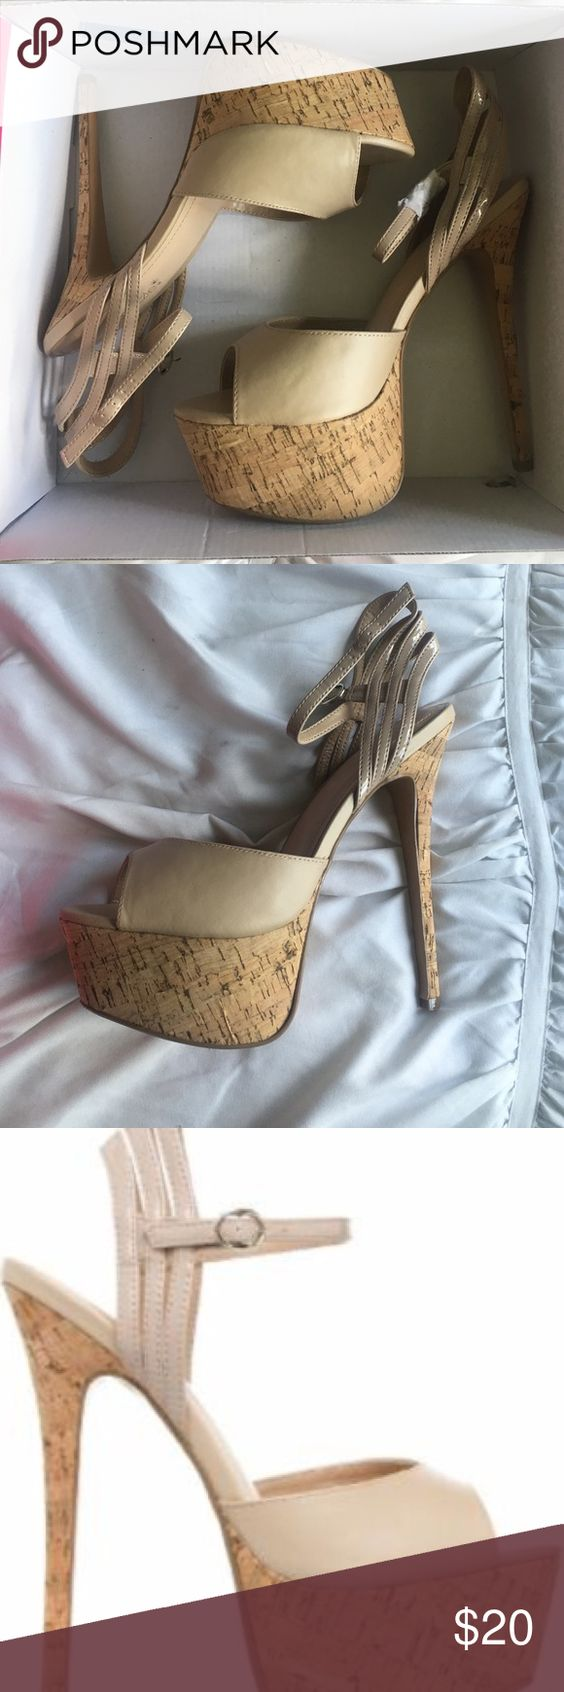 Franny Shoe Dazzle Heel Beautiful tan colored shoe with cork heel and platform! Never worn! Size 9. Shoe Dazzle Shoes